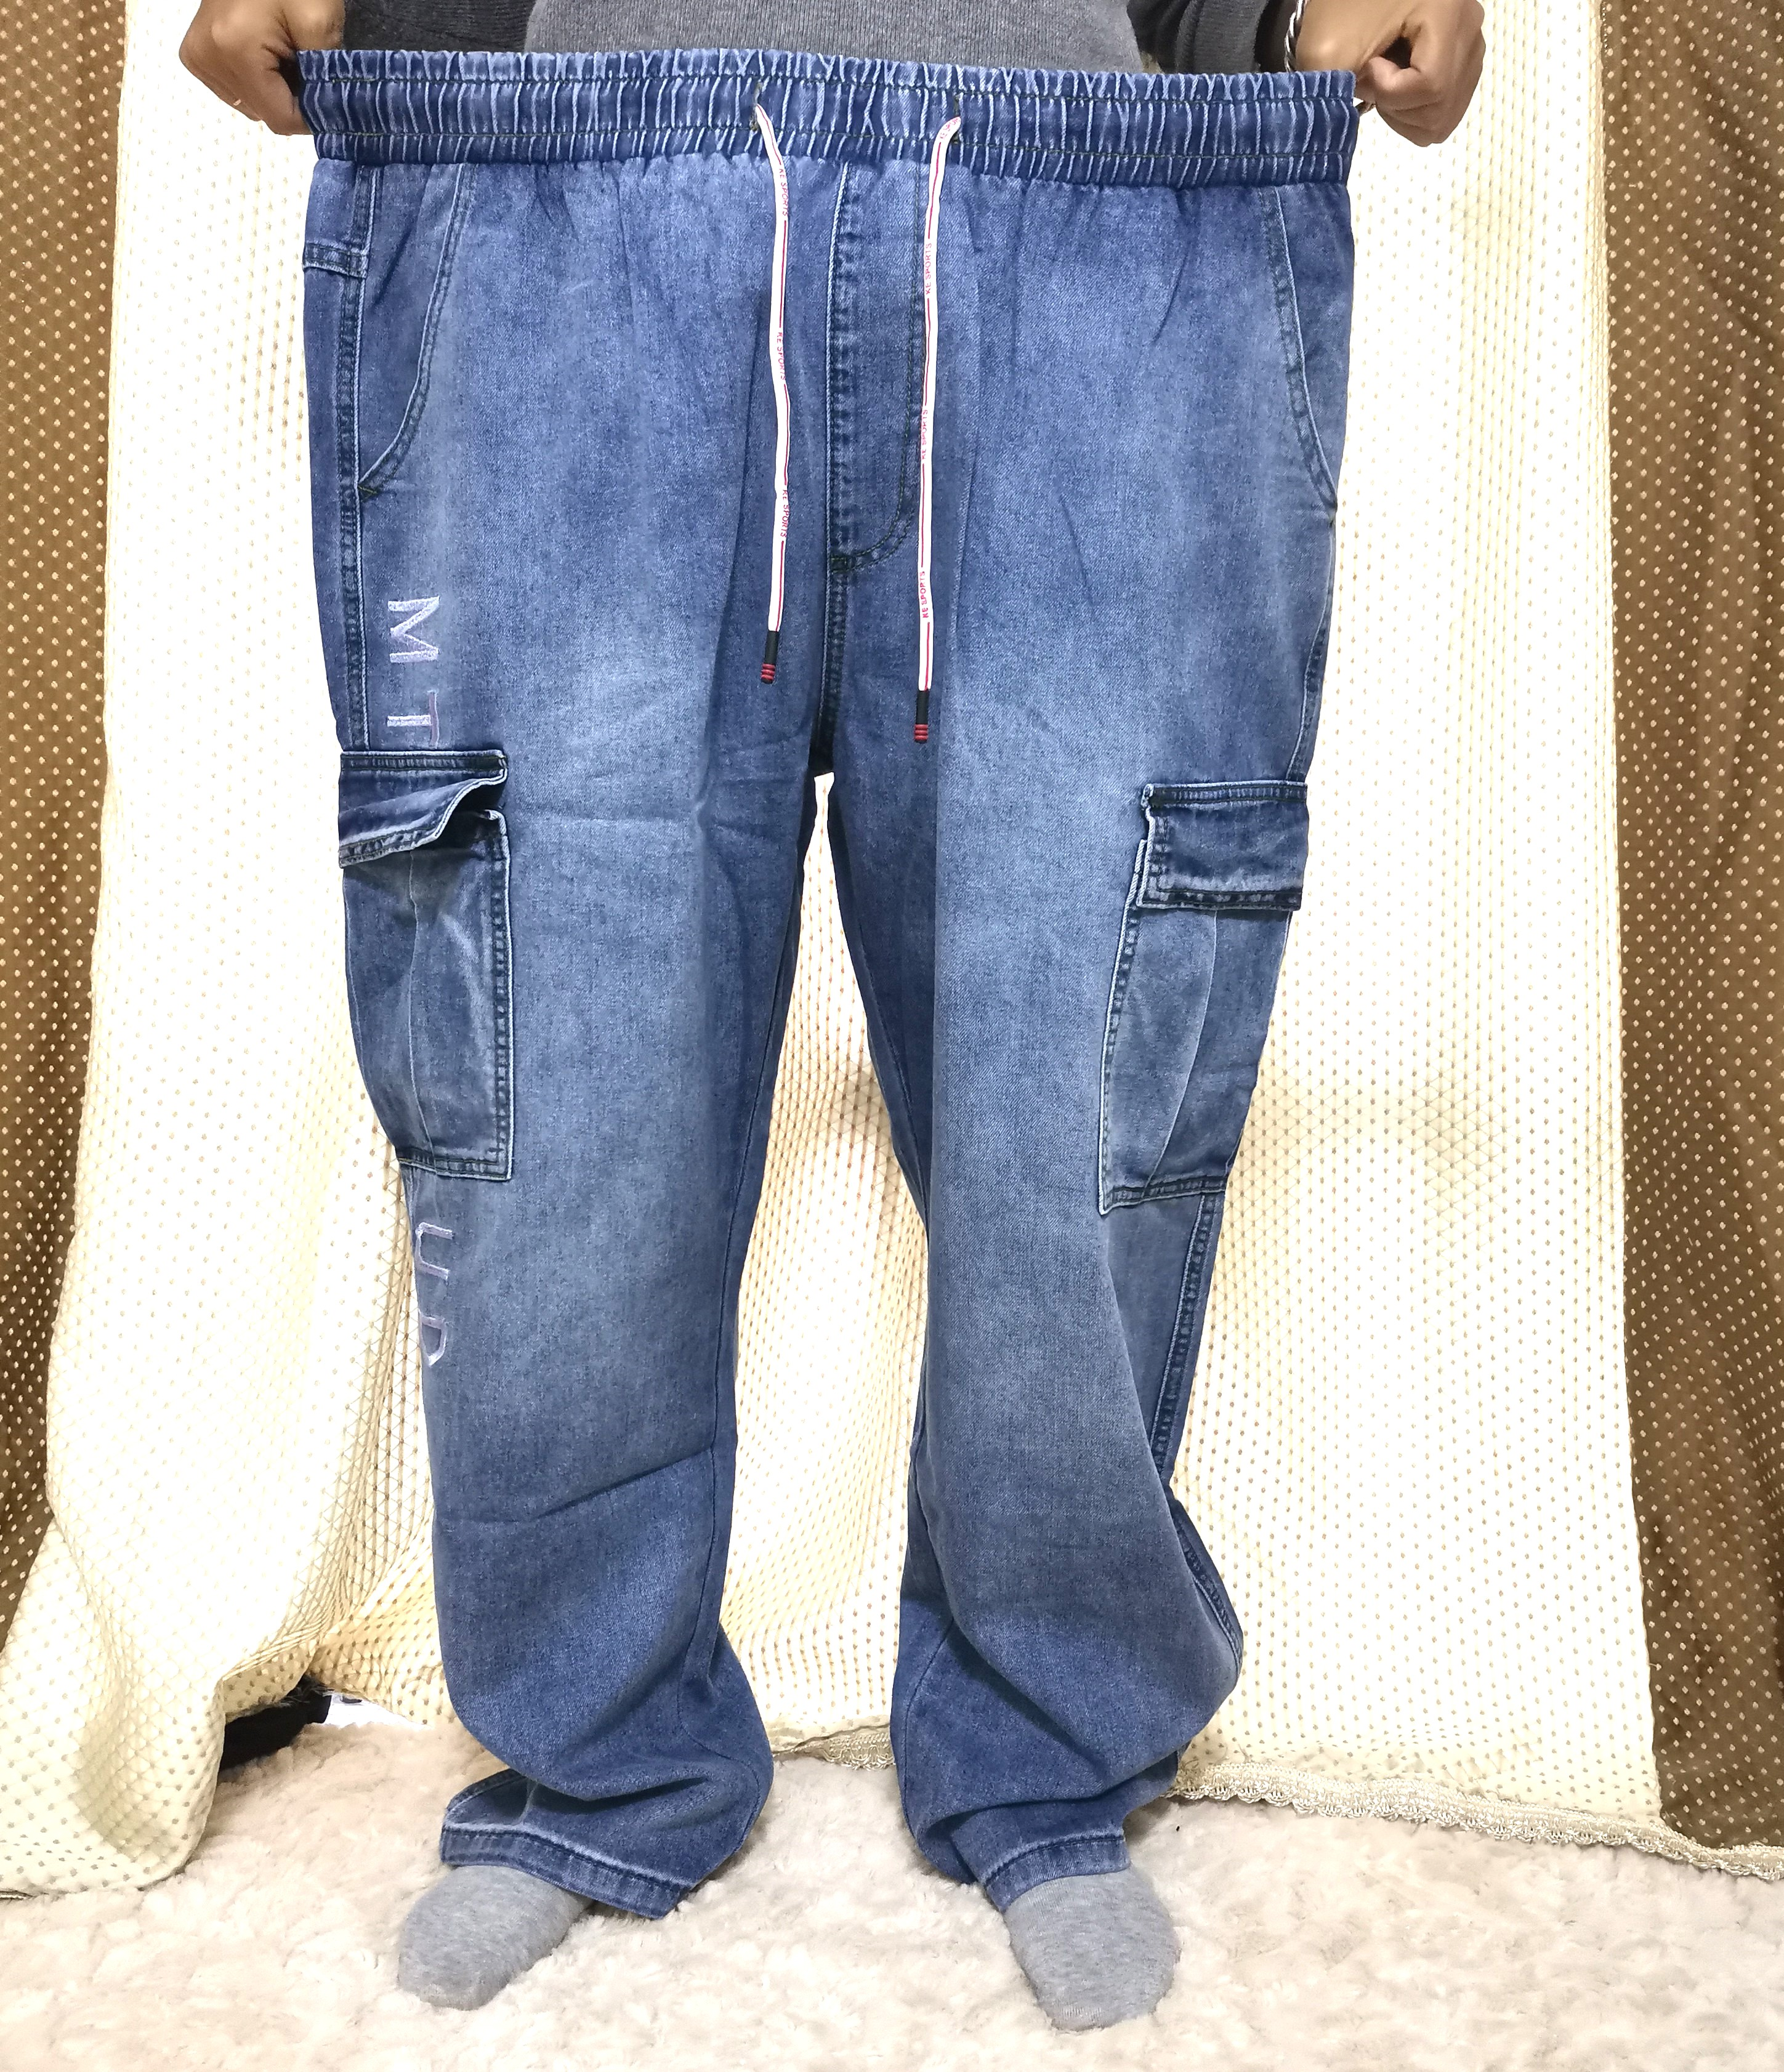 7XL Men's Denim Cotton Stretch Casual Jeans Overalls Clothing Fat Large Big Size Pants Multi-pocket Drawstring Blue Trousers